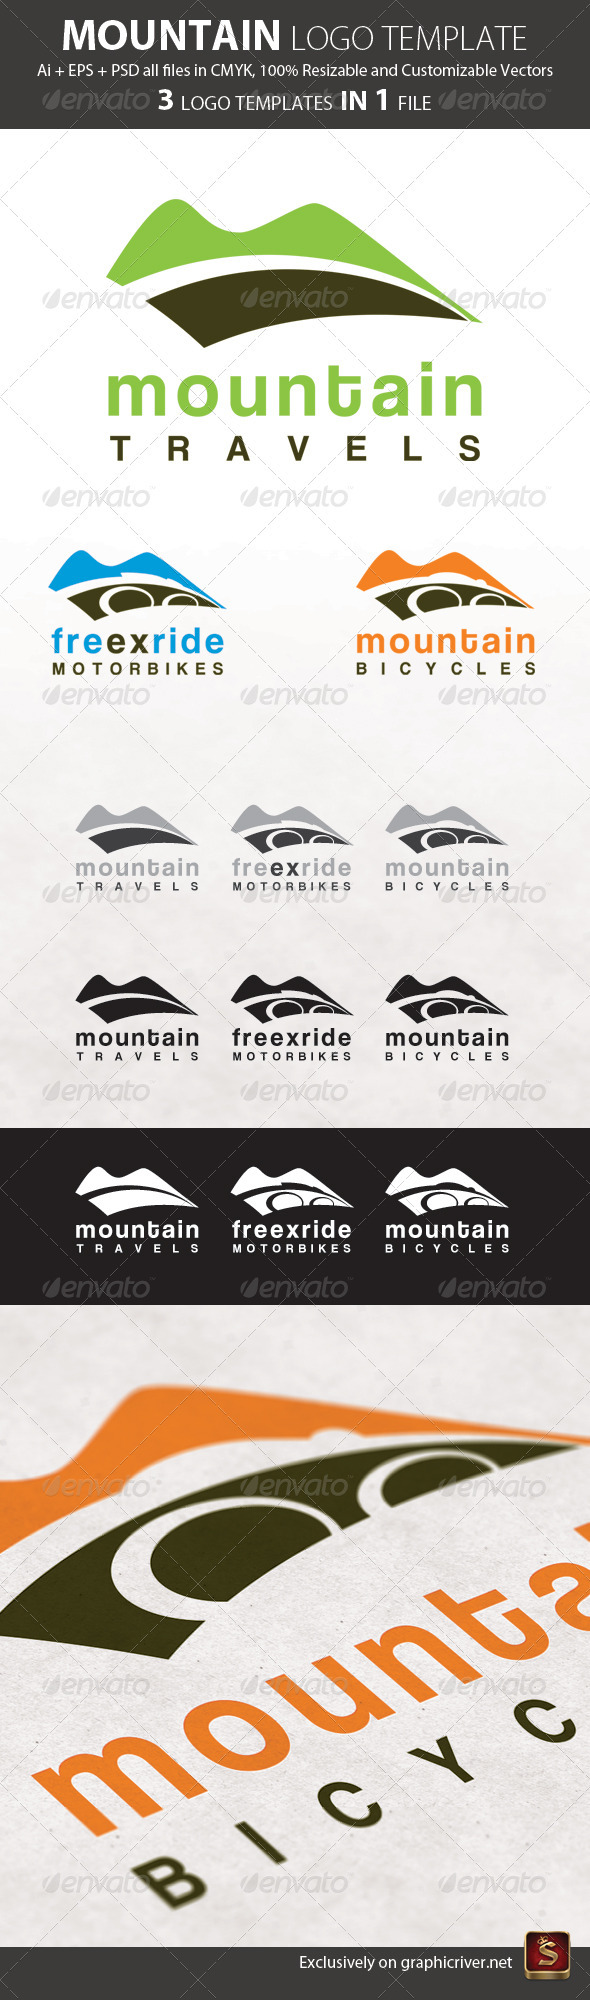 Mountain Logo Template 3in1 - Nature Logo Templates